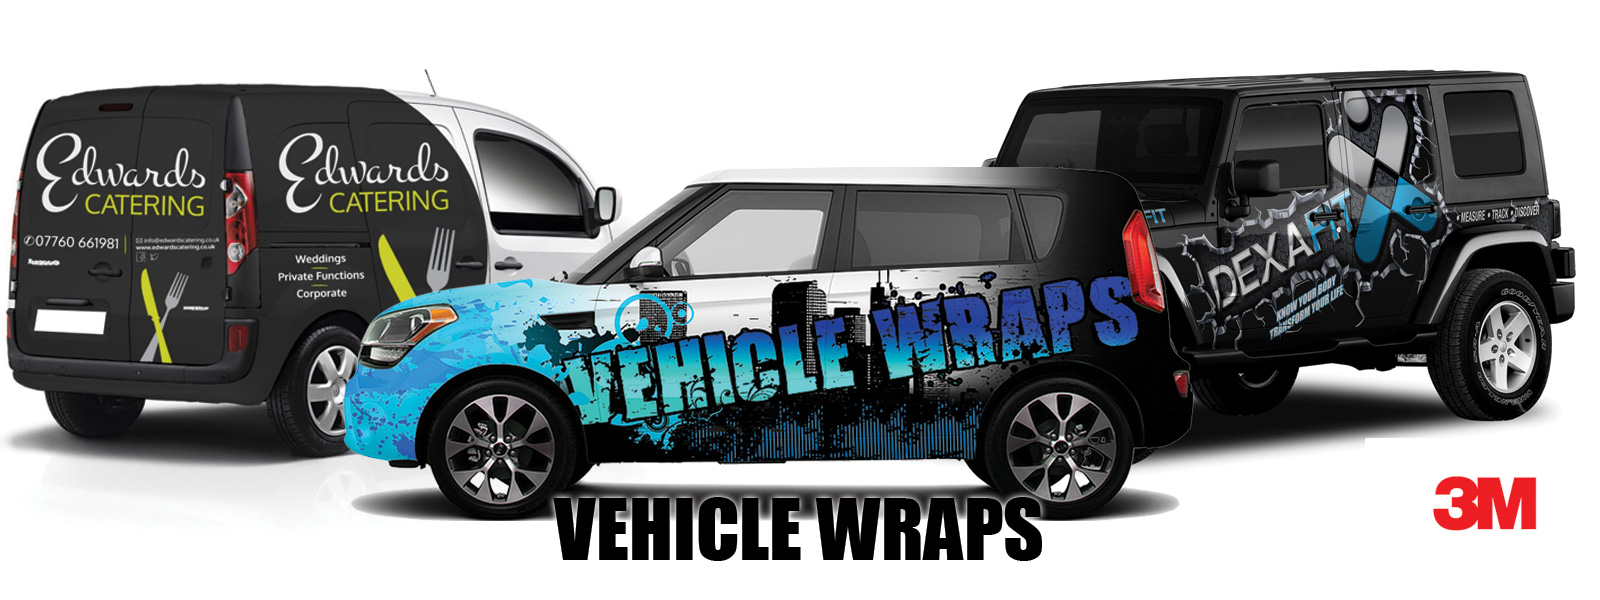 Car & Truck Wraps New Orleans